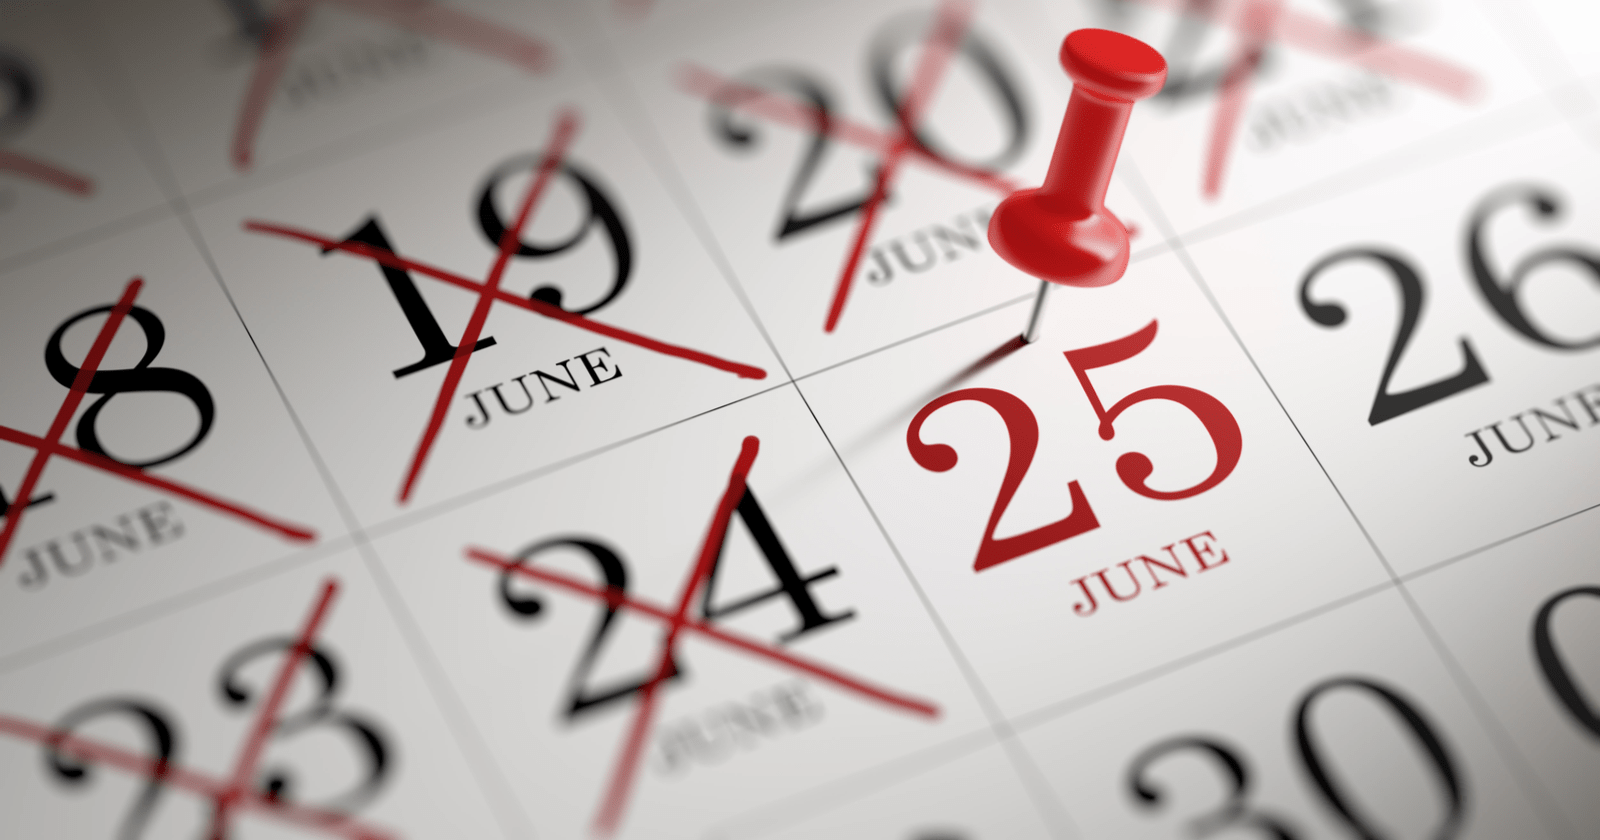 The June 25 Google Update: What You Should Do Now by @beaupedraza